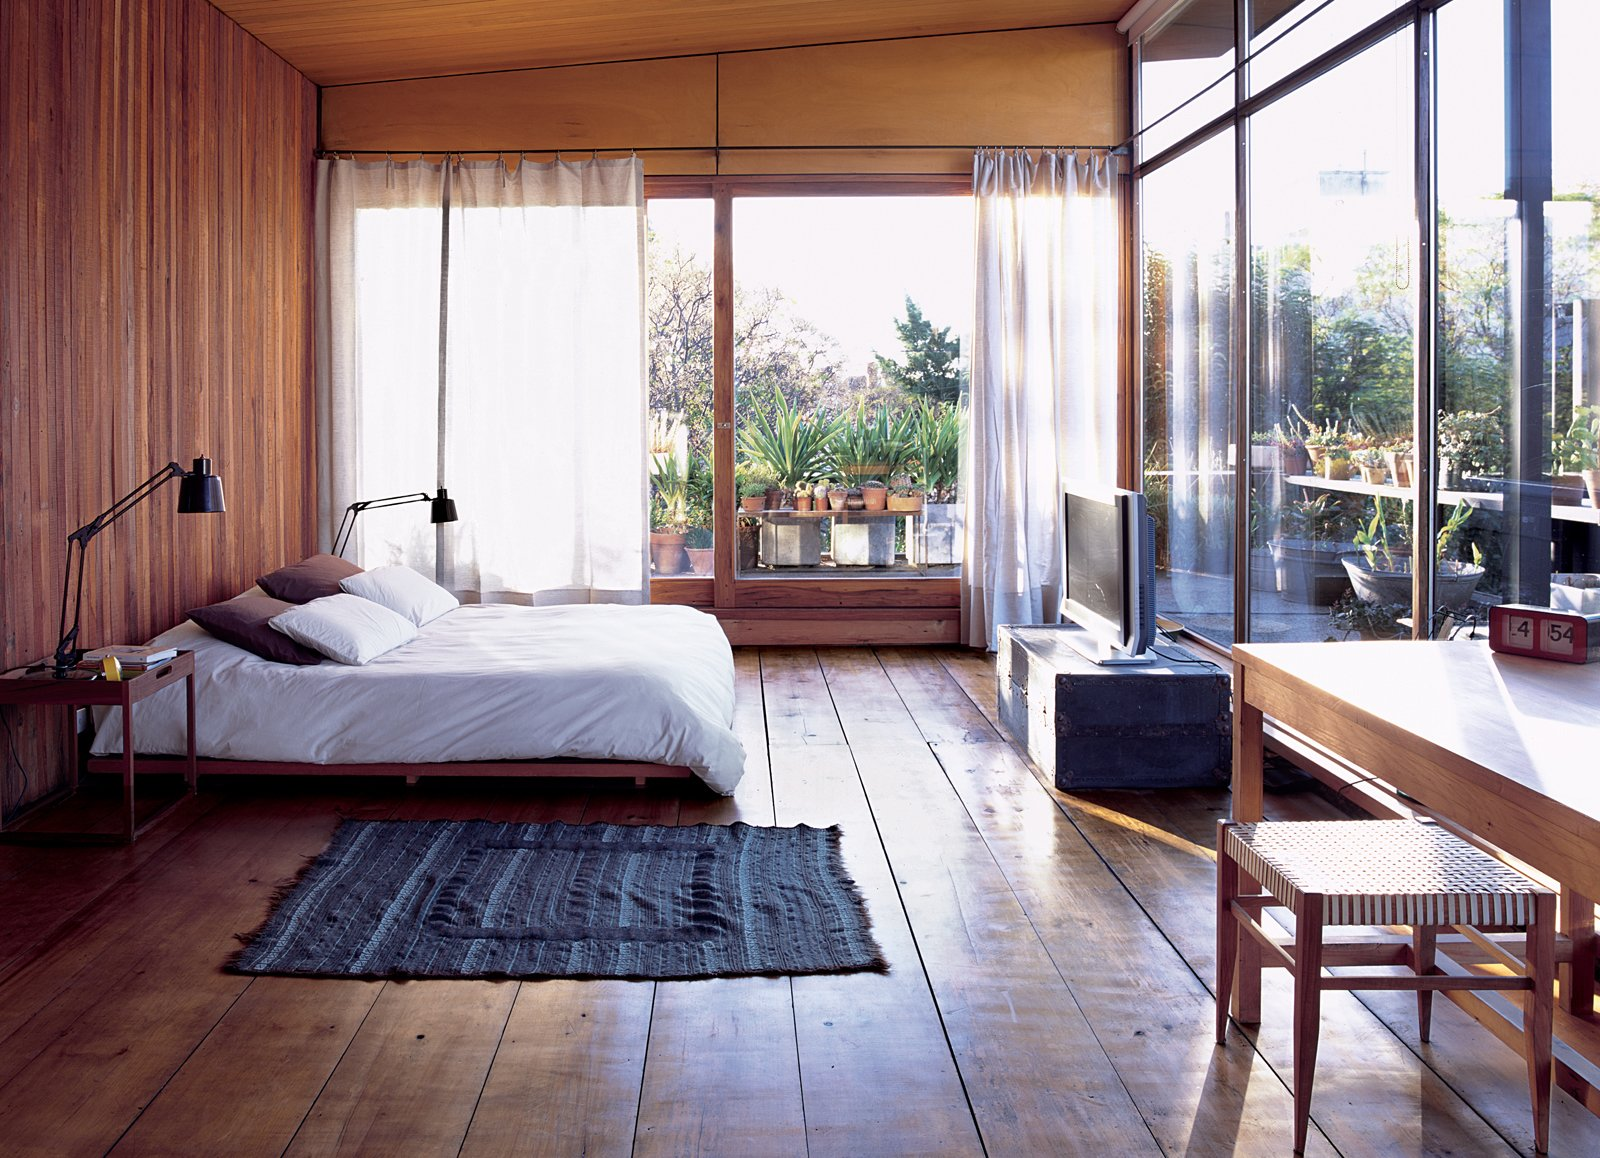 A COZY AND MODERN INDOOR-OUTDOOR BEDROOM IN BUENOS AIRES  In Argentinean architect and furniture designer Alejandro Sticotti's bedroom, dappled sunlight and reclaimed-wood floors and walls give the room a warm, peaceful feel. Tagged: Bedroom, Bed, Medium Hardwood Floor, and Table Lighting.  Bedroom by Elmaqroll  from Net Assets